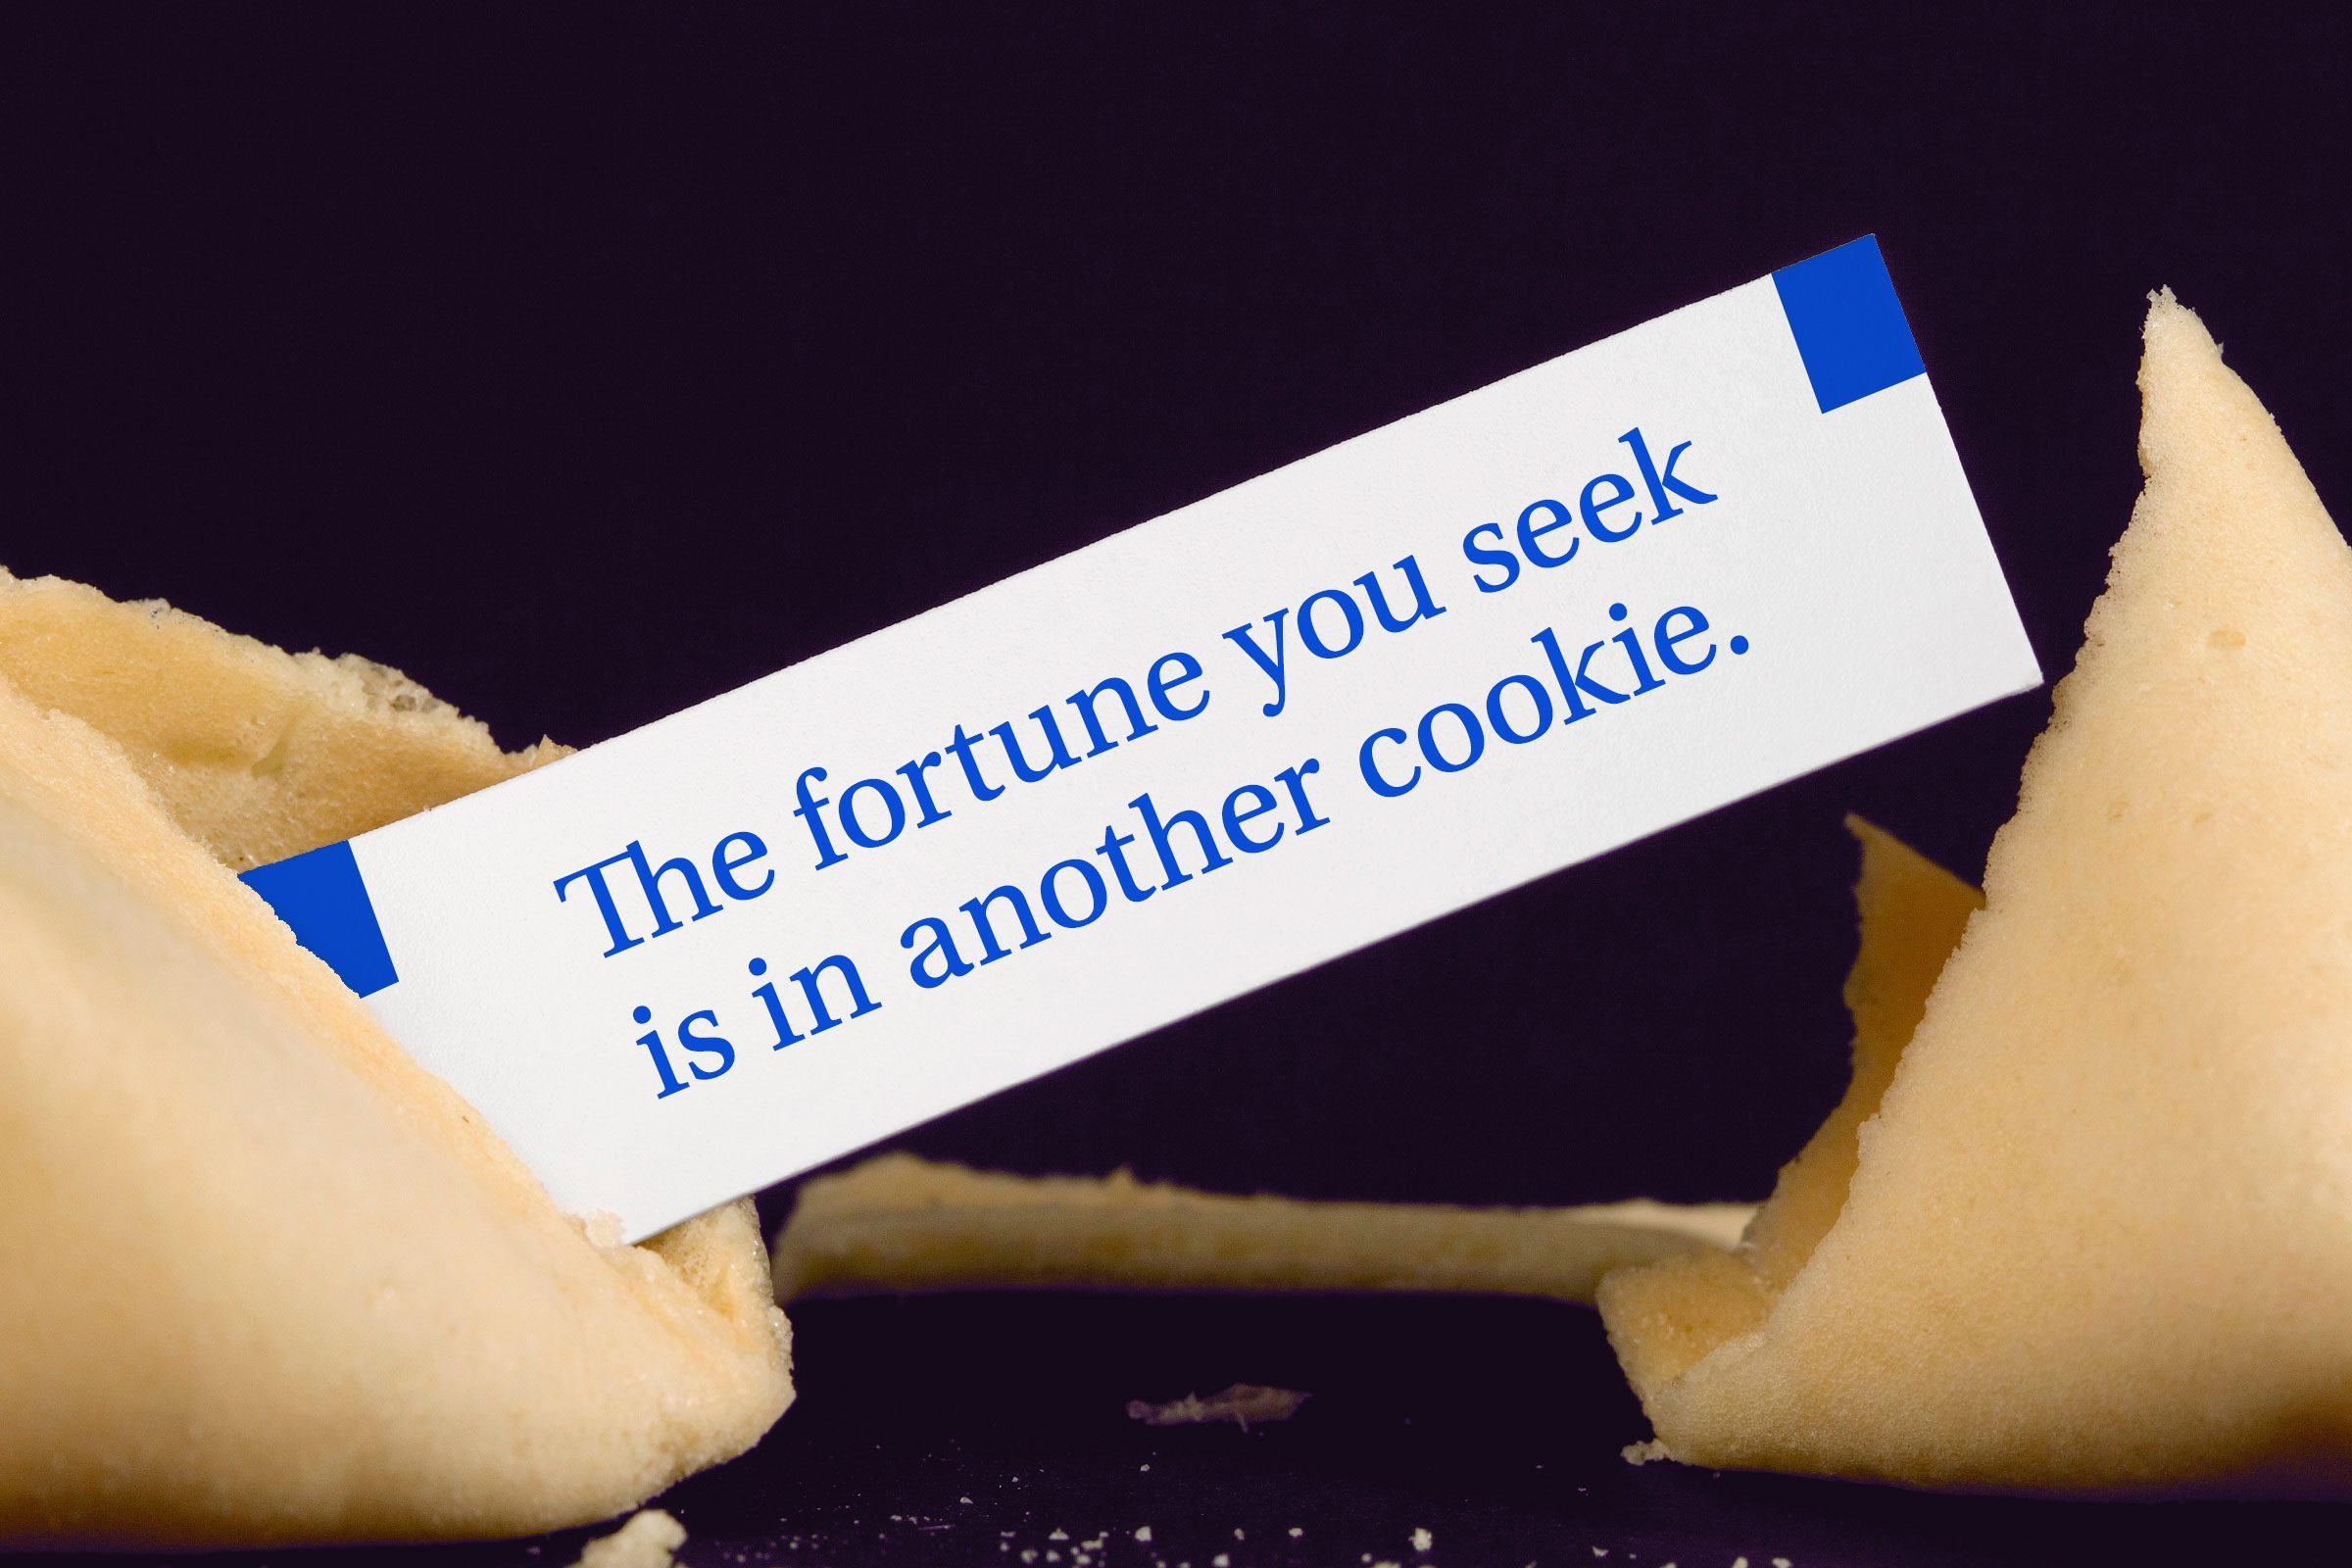 For image: The fortune you seek is in another cookie.